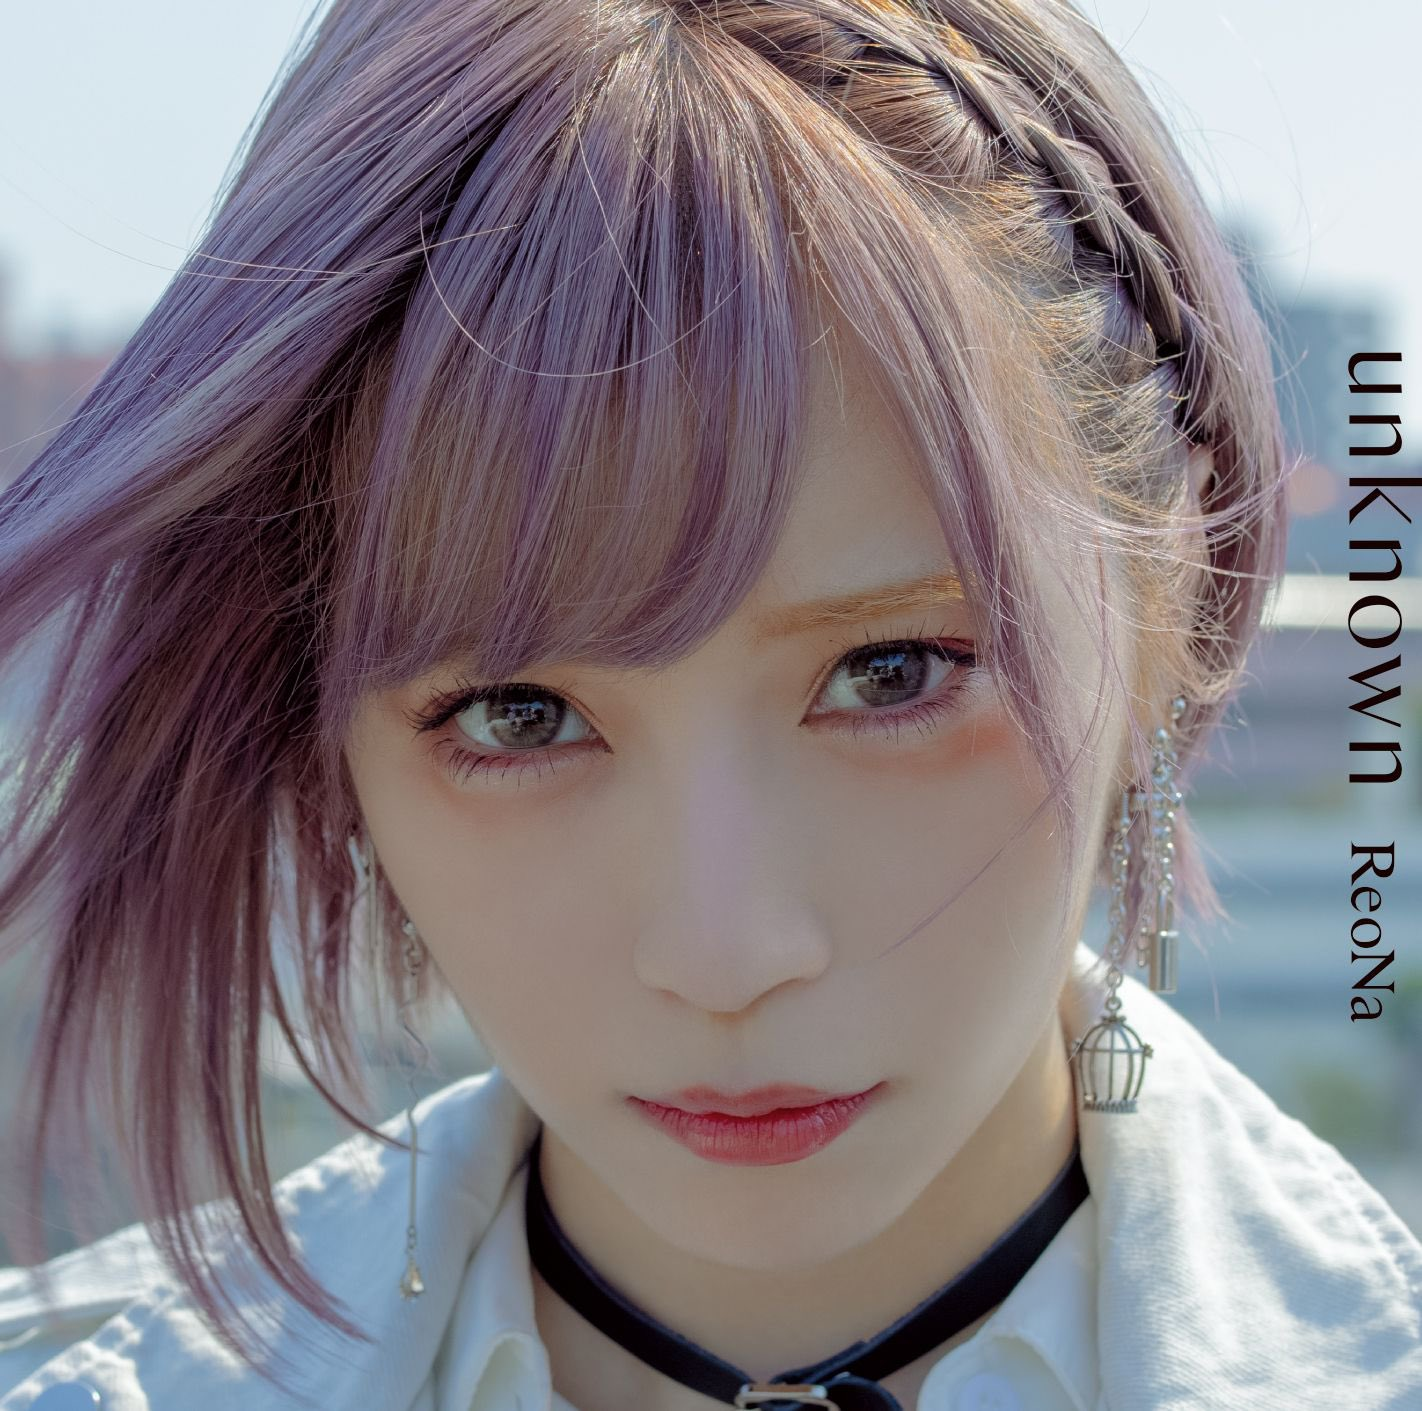 ReoNa - unknown